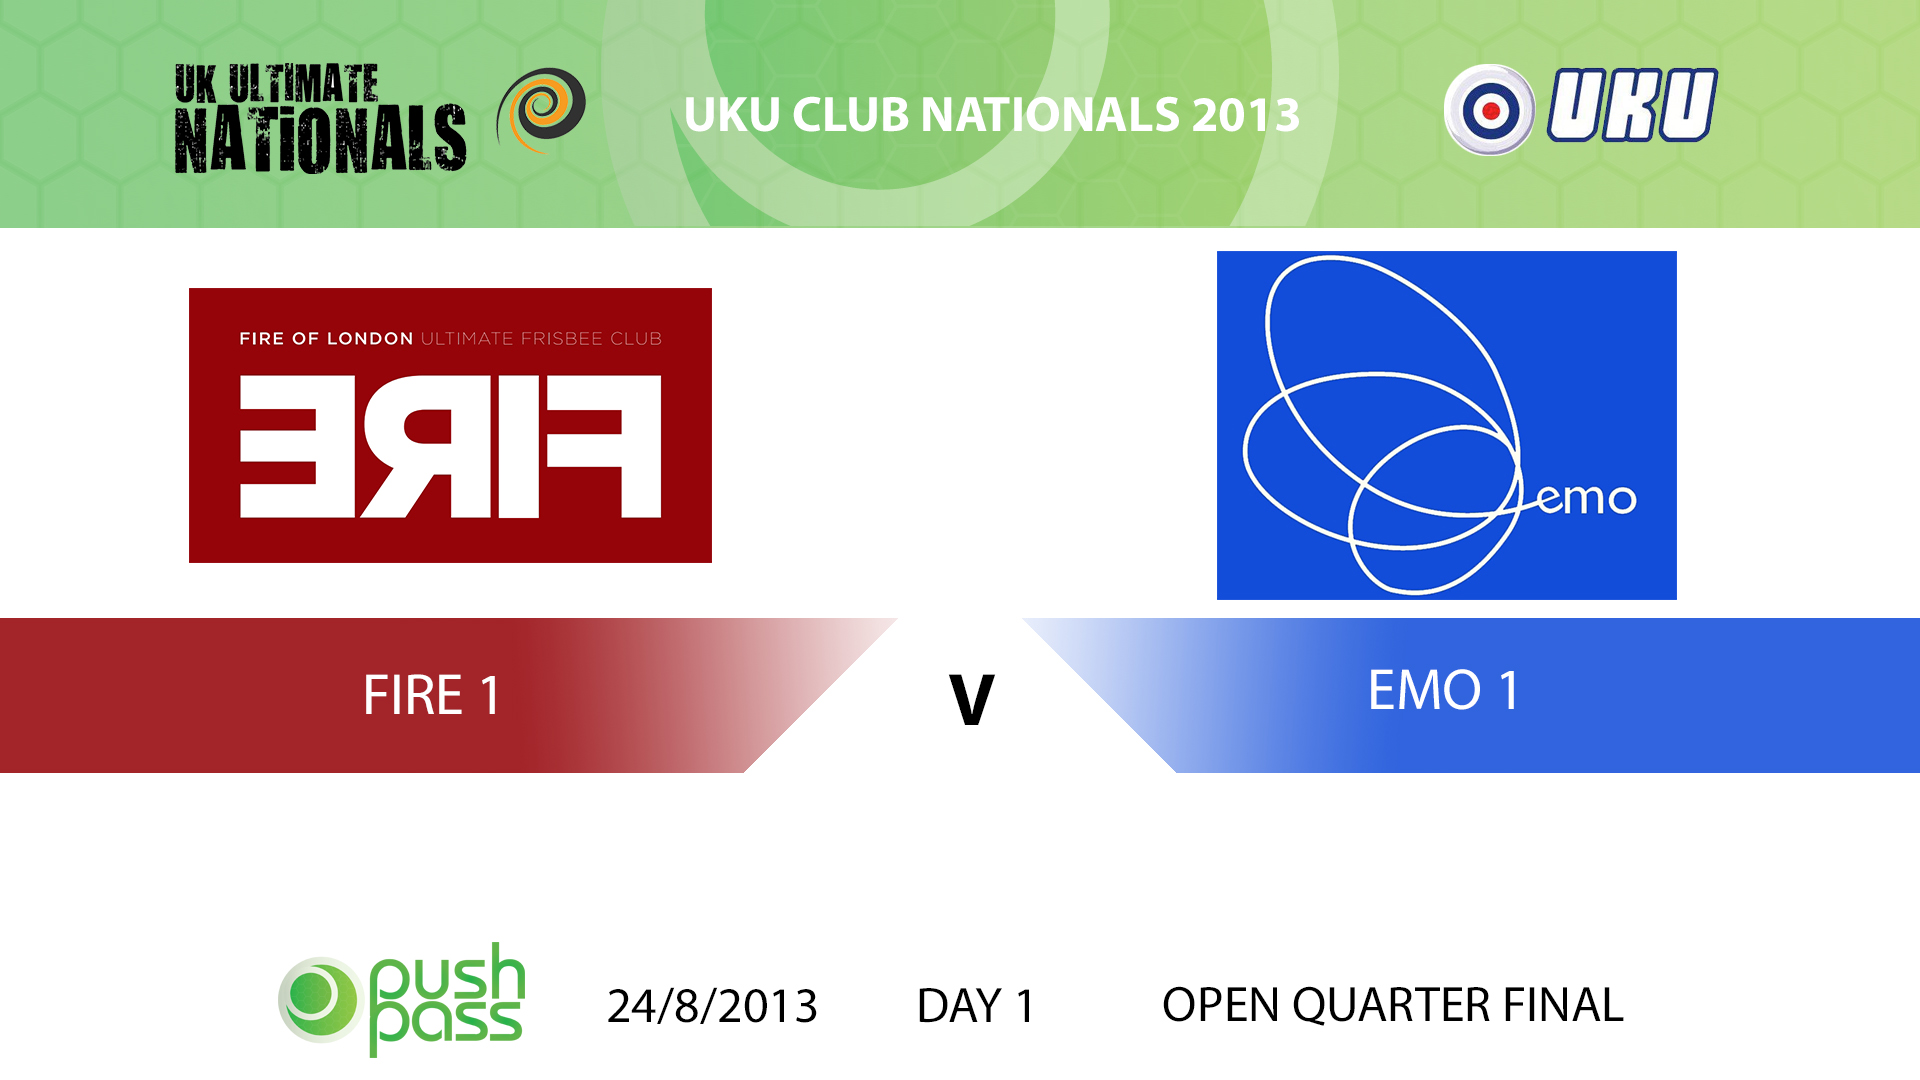 UKU Club Nationals 2013: Fire 1 v EMO 1